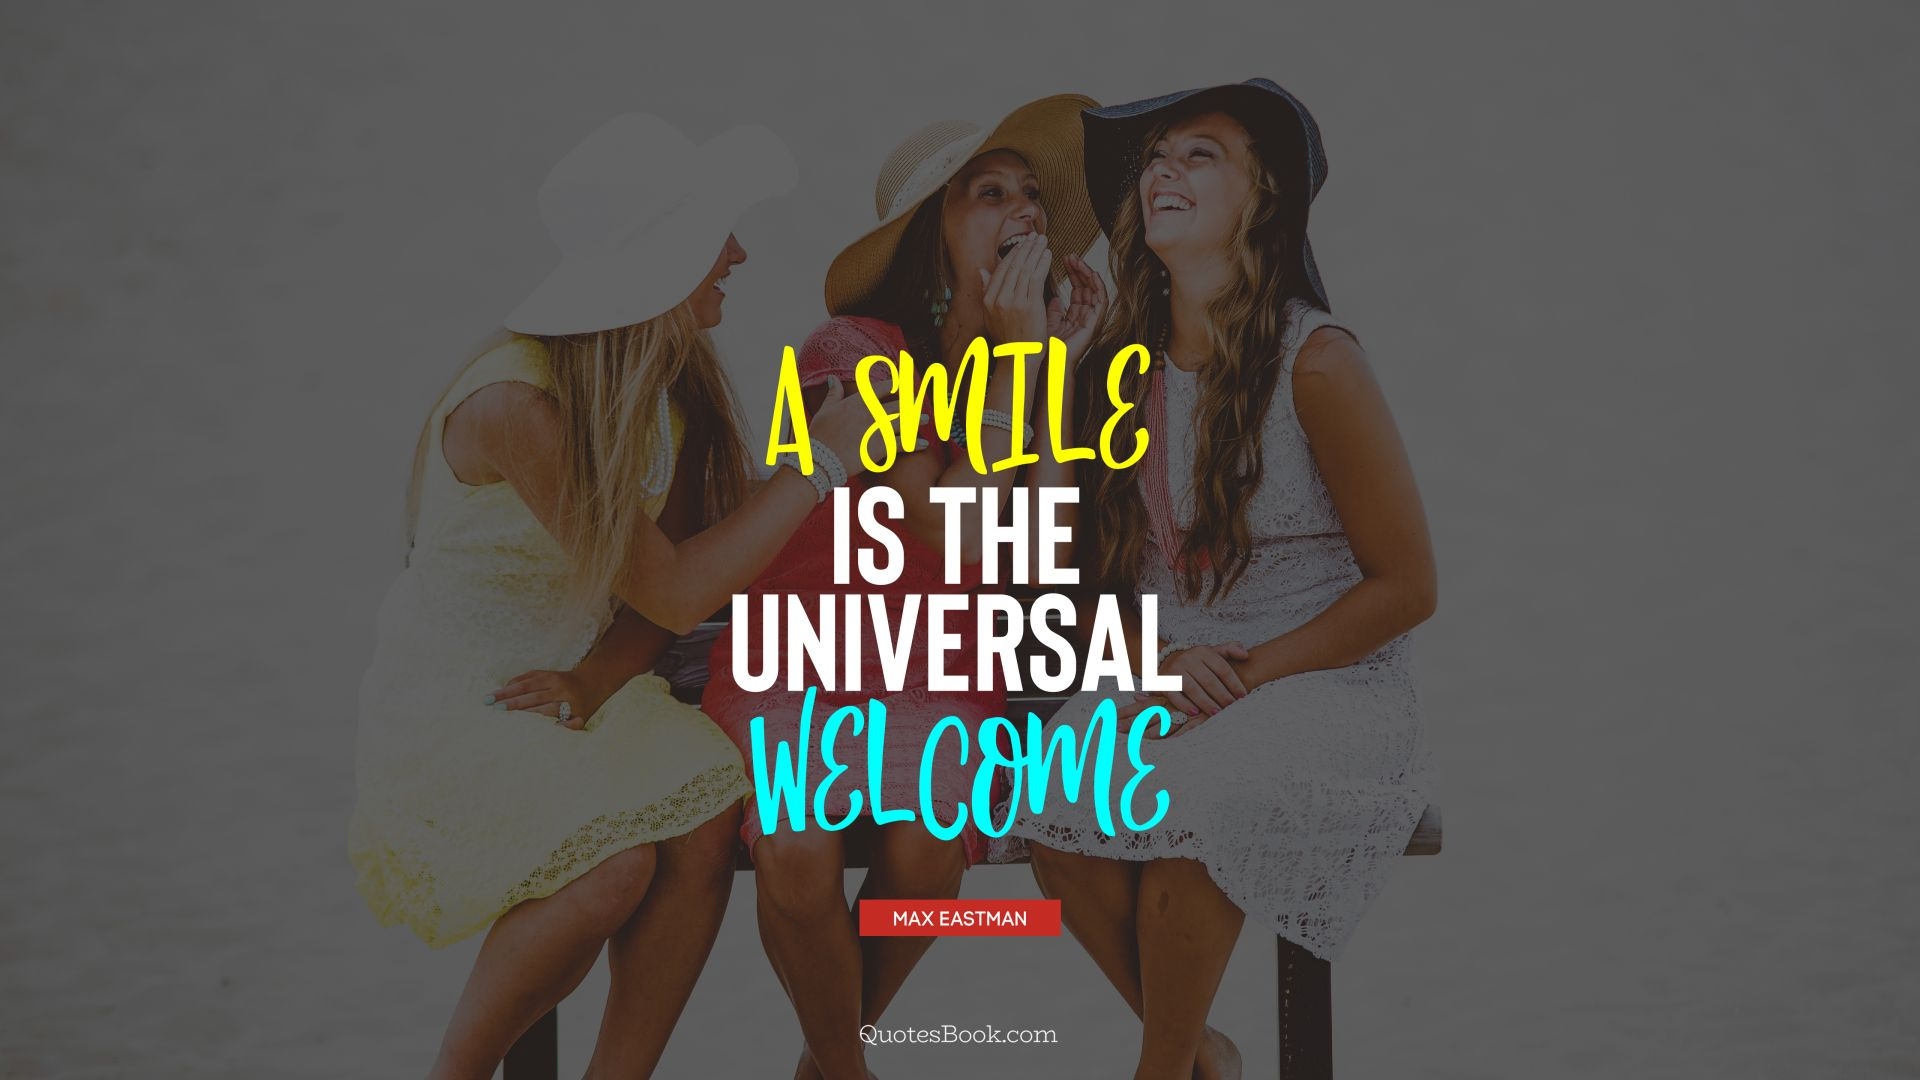 A smile is the universal welcome  - Quote by Max Eastman